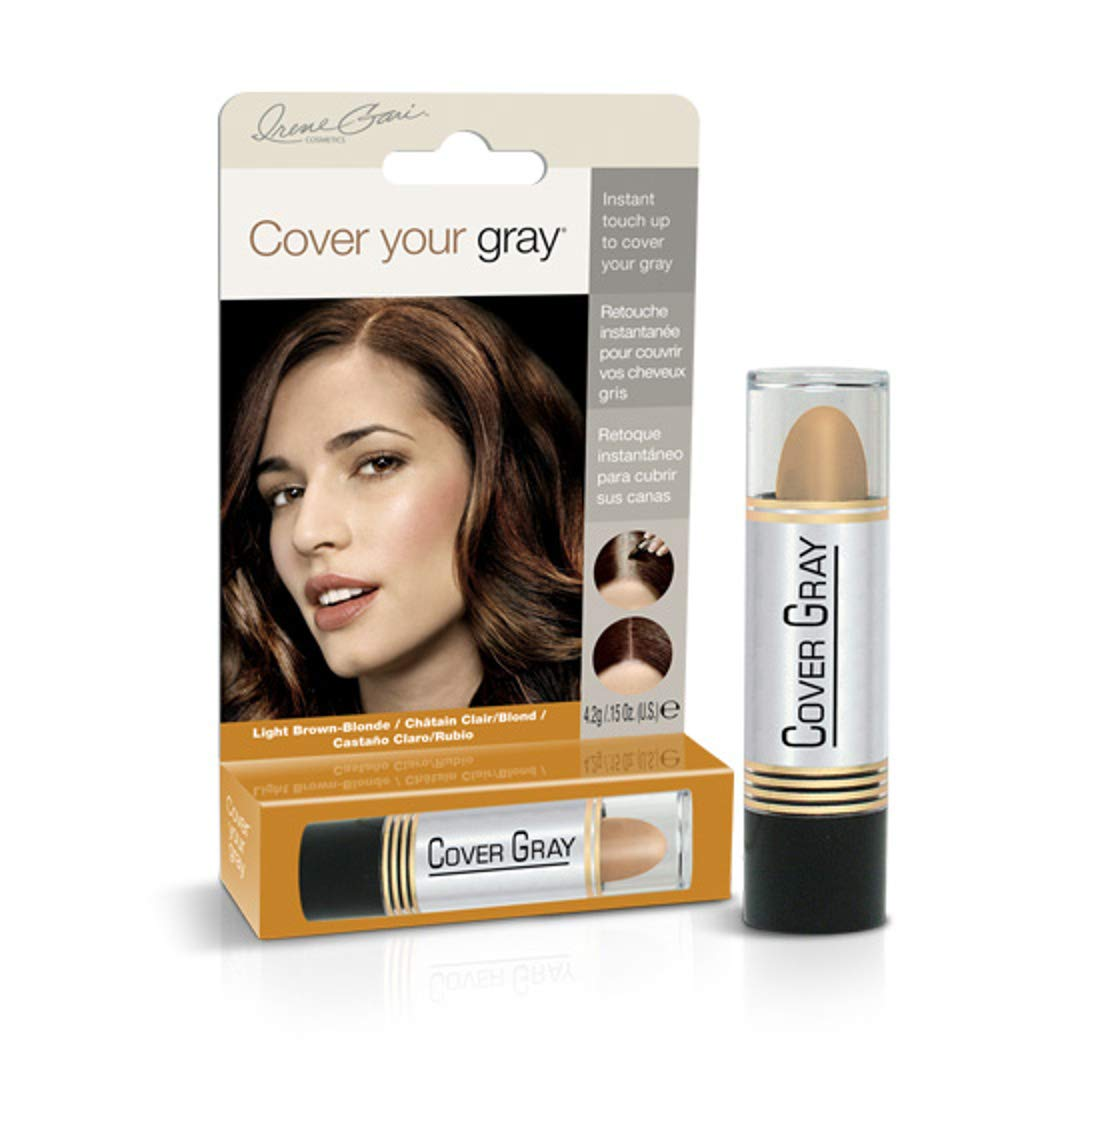 Cover Your Gray for Women Light Brown/Blonde Fisk Industries